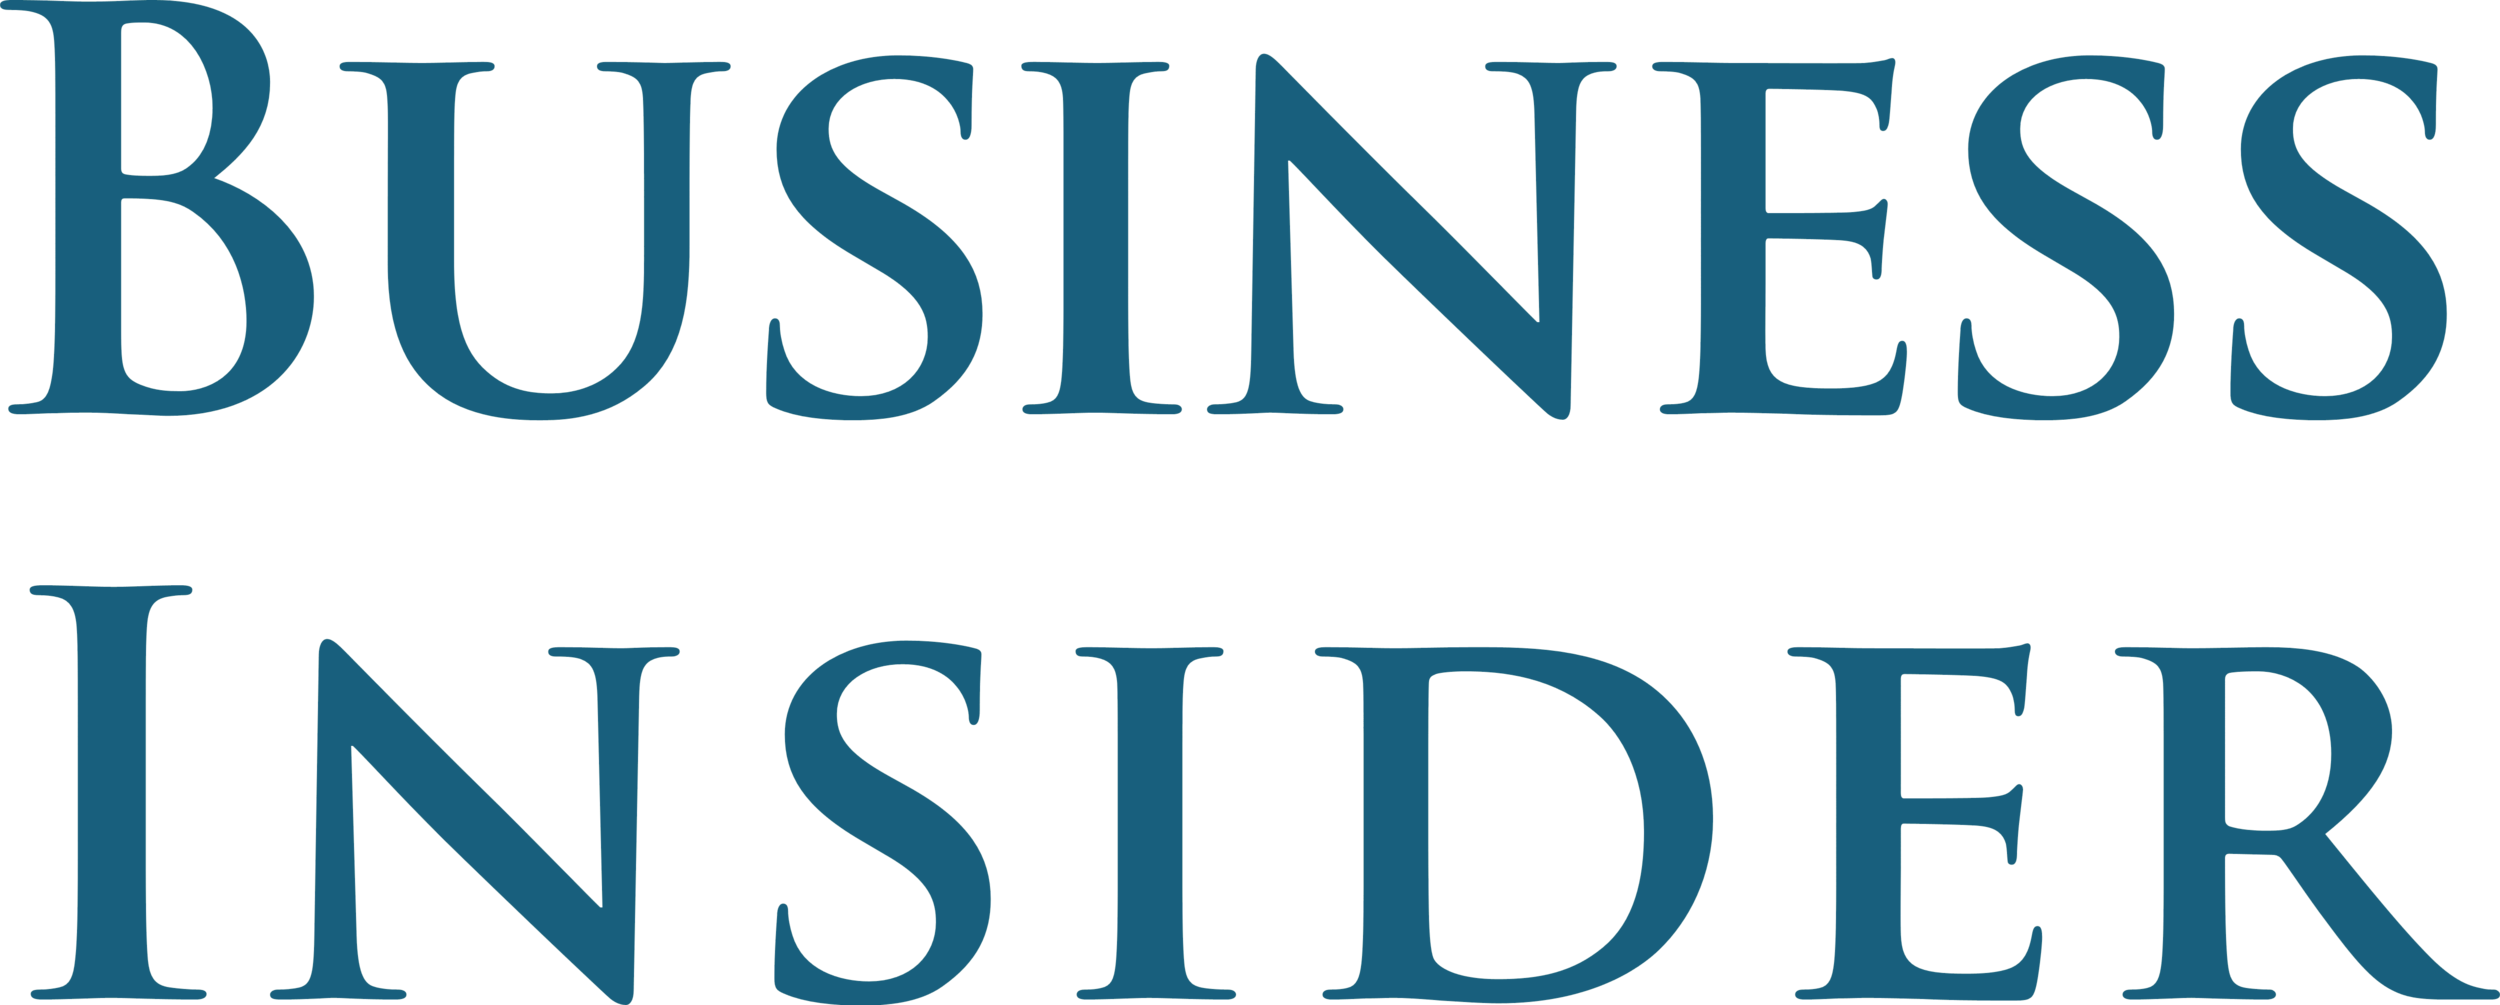 Business Insider (1).png